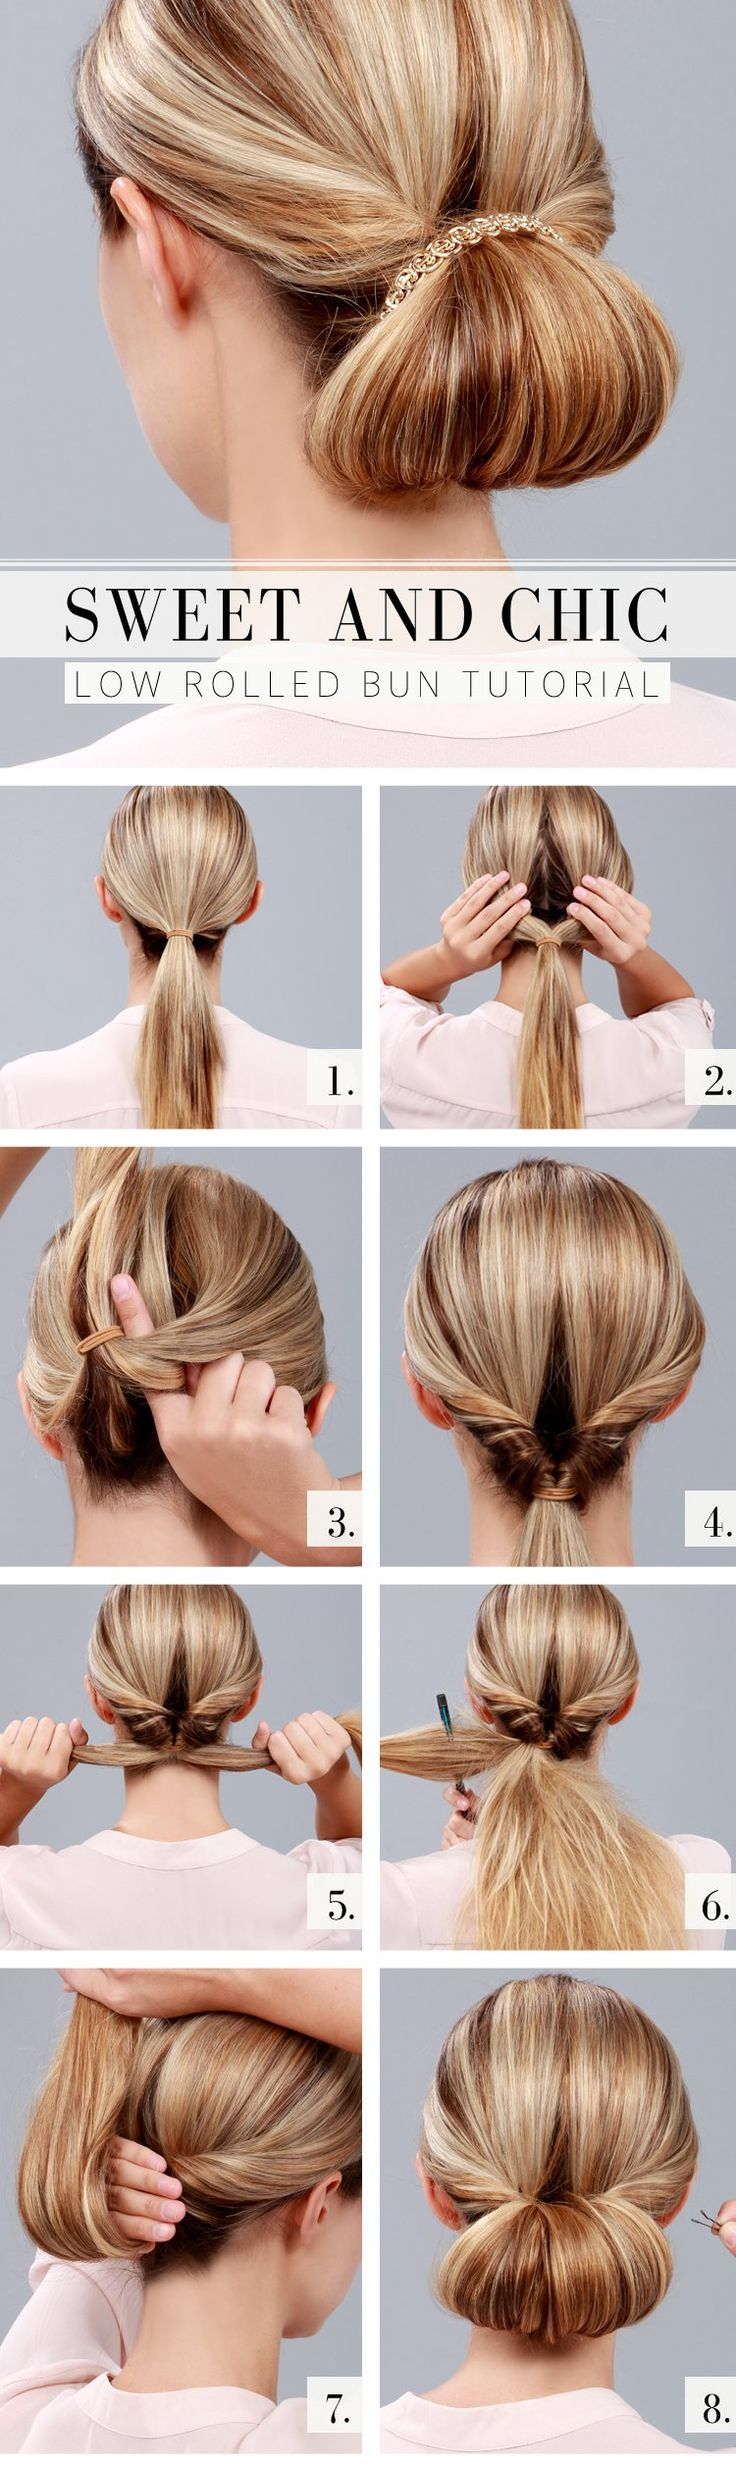 16 stunning hairstyles with step-by-step tutorials